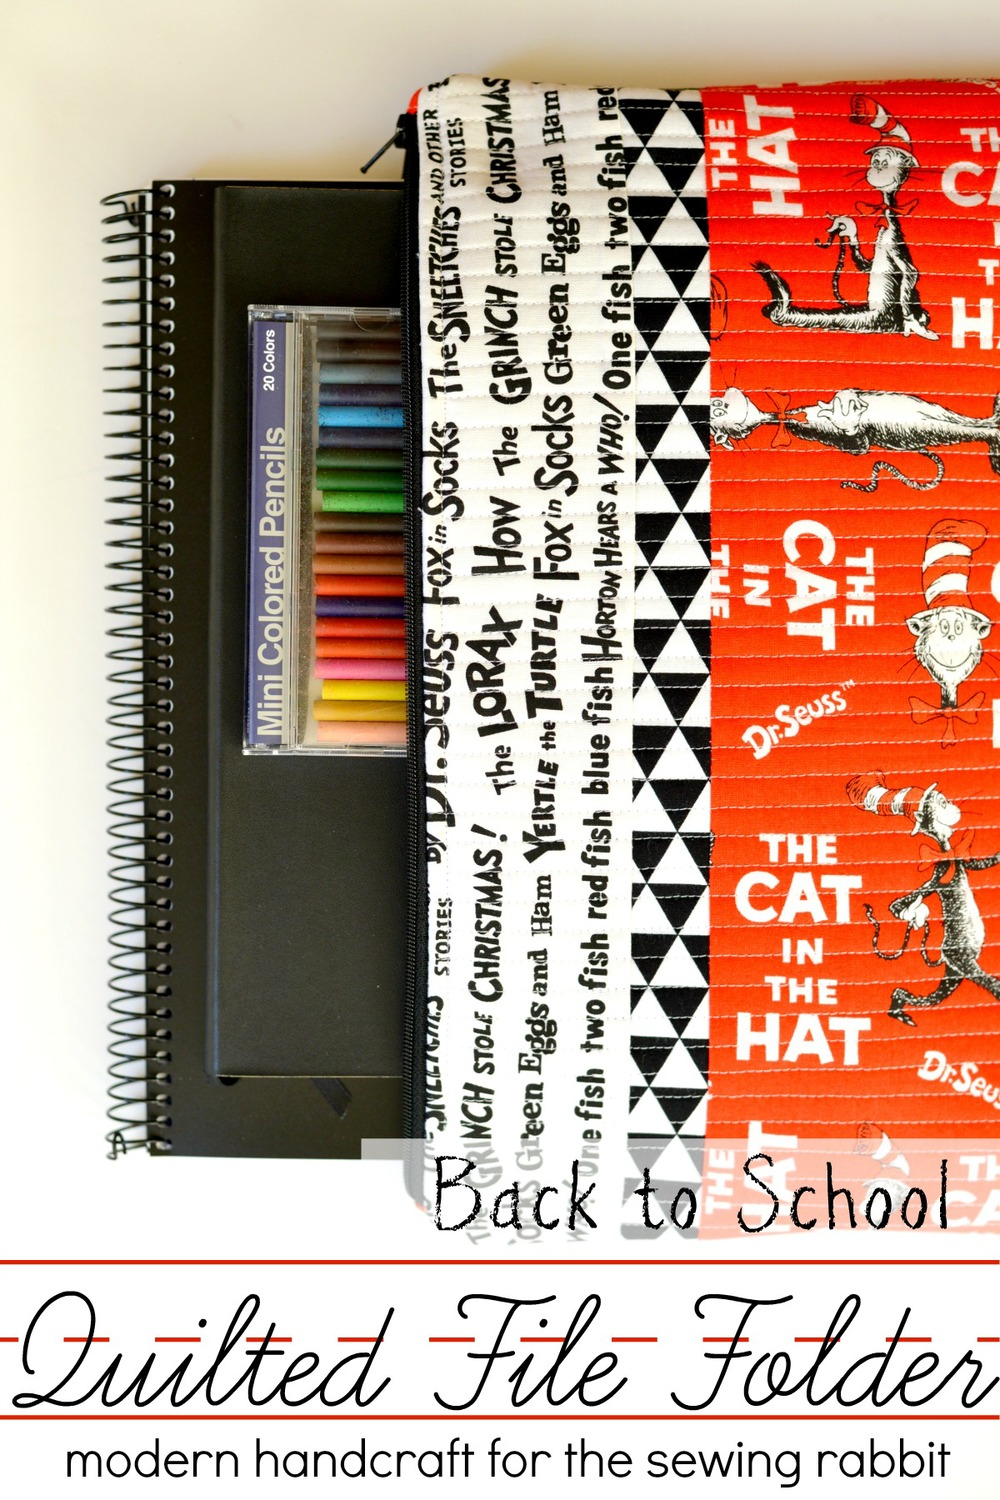 Back to School Quilted File Folder Tutorial from The Sewing Rabbit